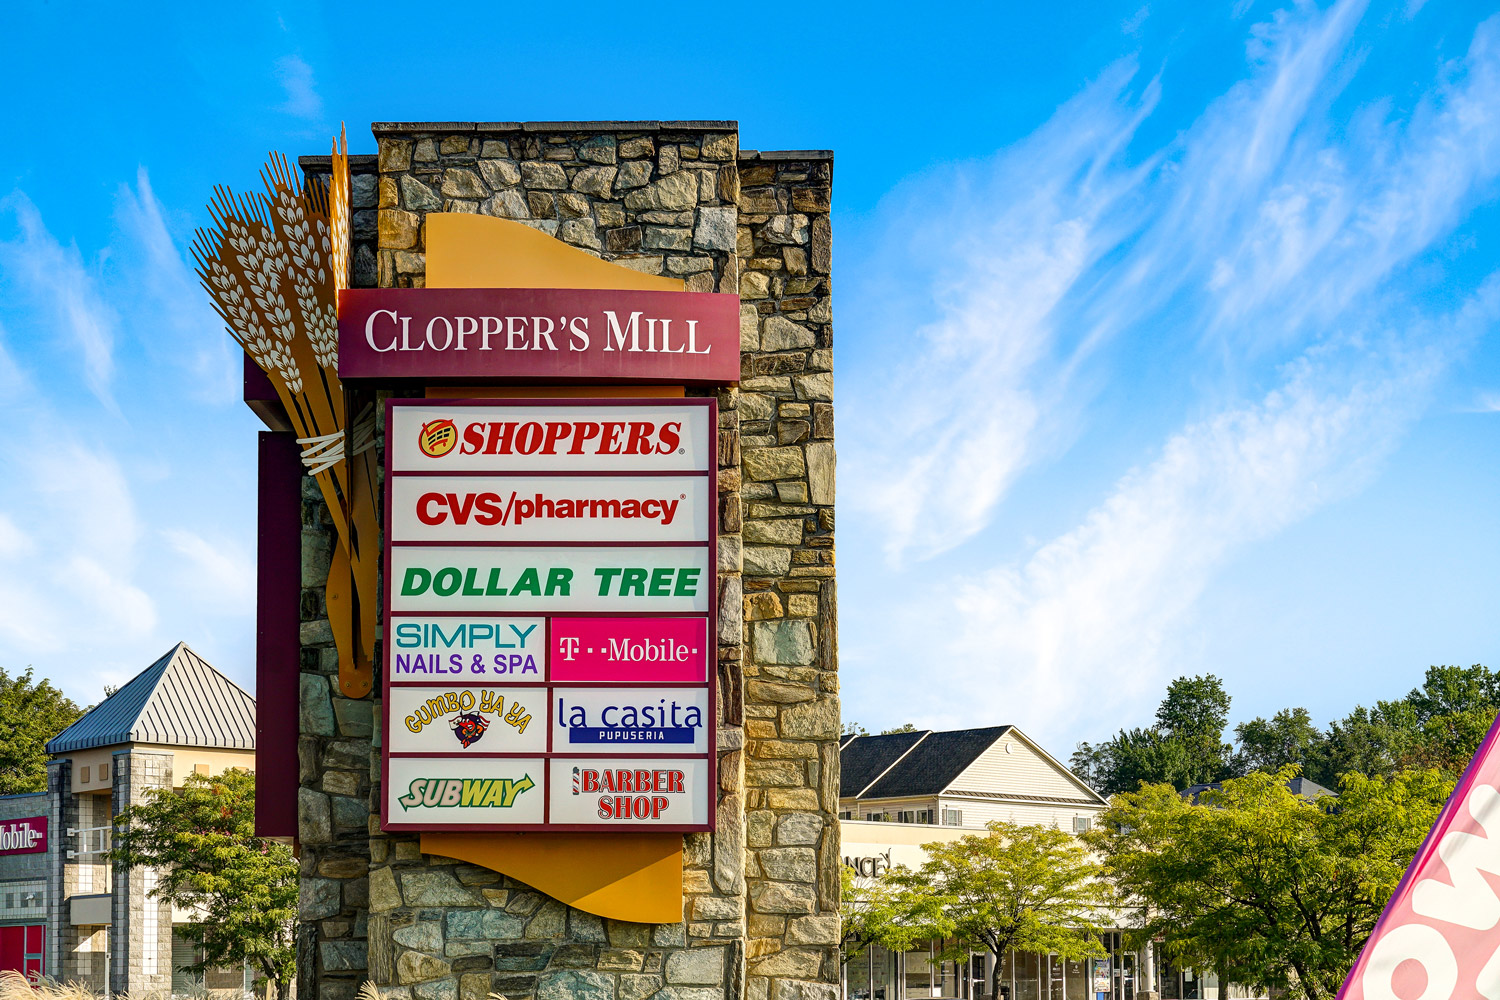 Cloppers Mill shopping center is 3 minutes from Seneca Club Apartments in Germantown, MD